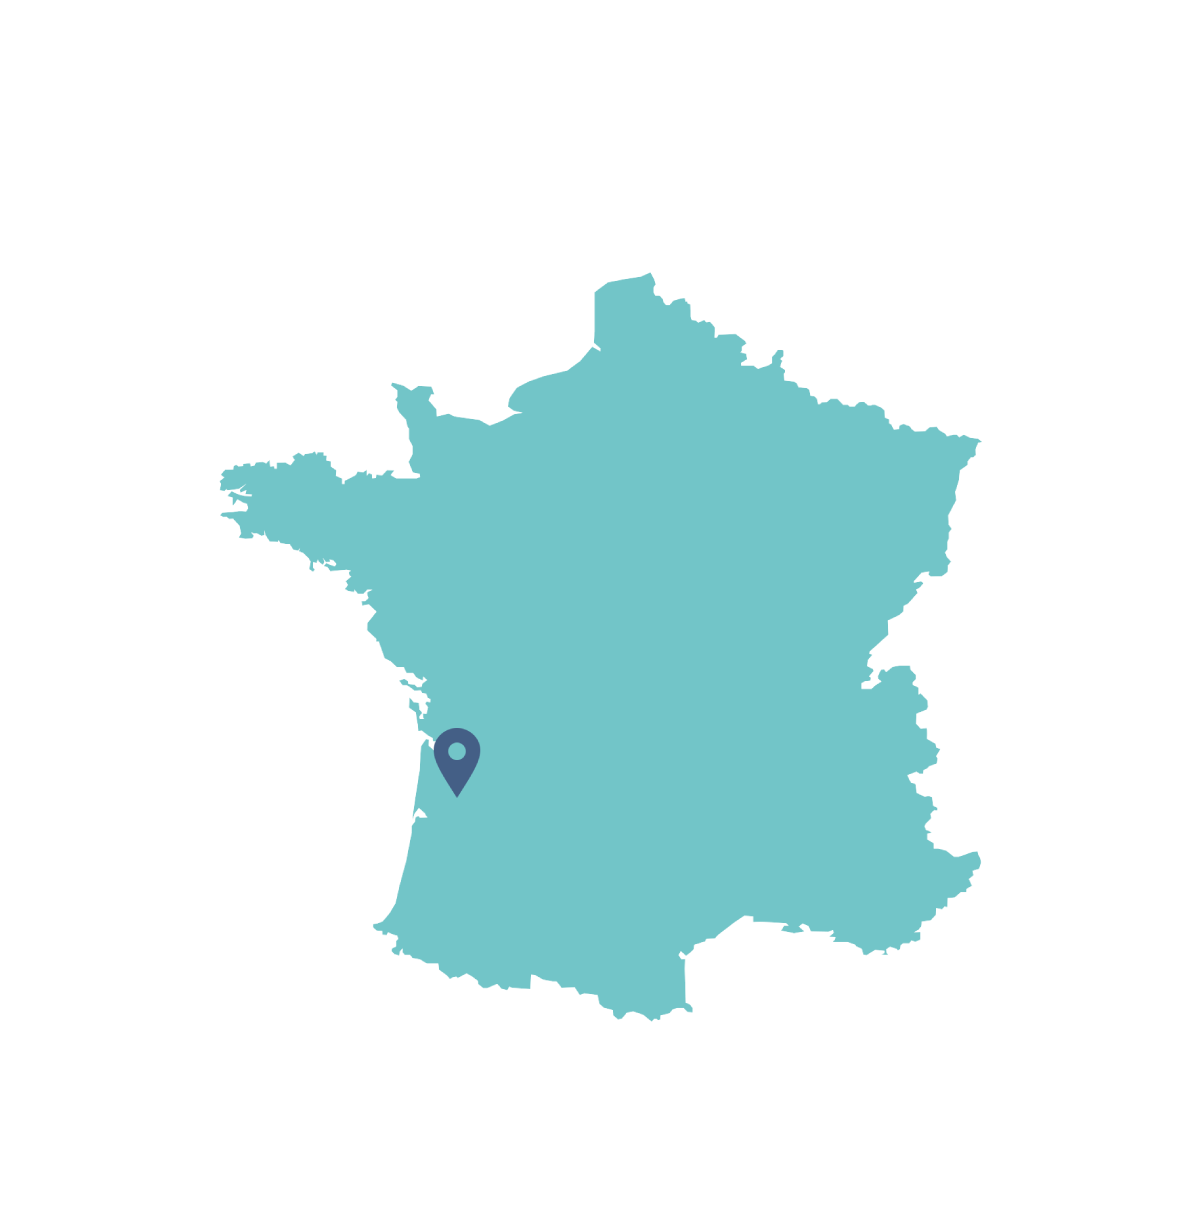 1200px-Blank_France_map,_no_Departments (3)